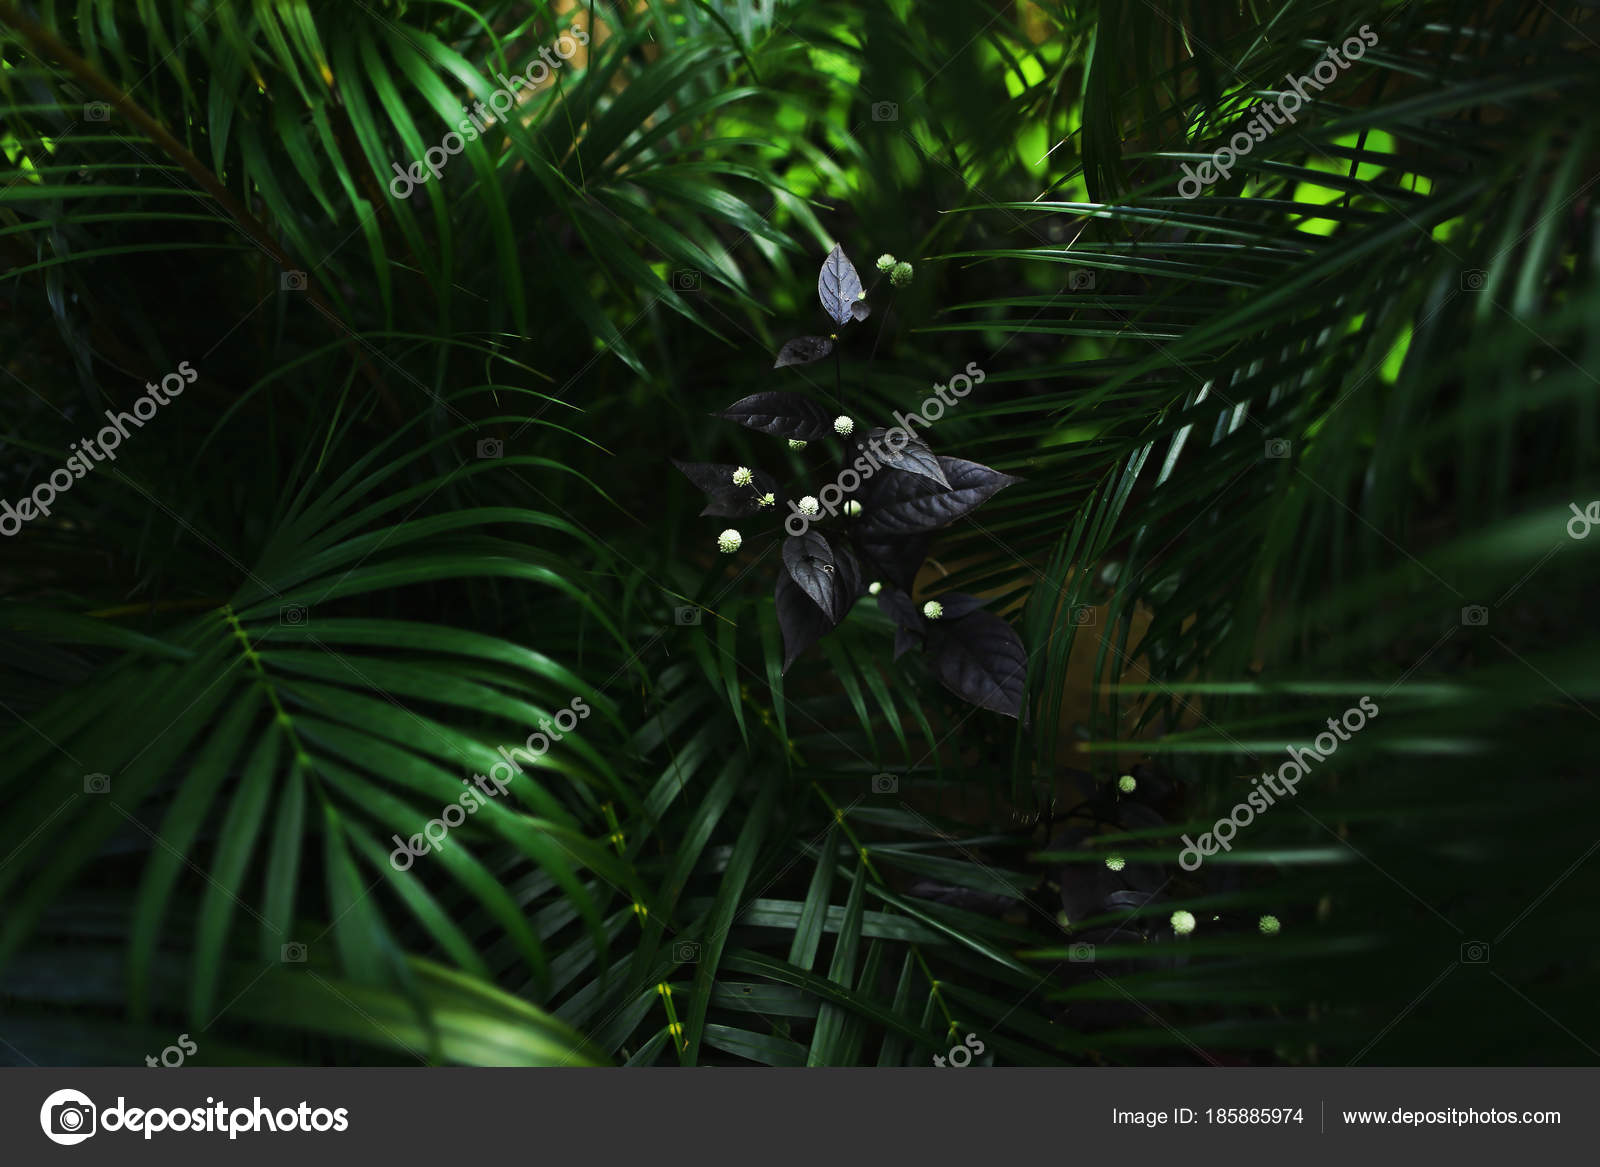 Dark Fantastic Portrait Of Green Palm Leaves And Flower Stock Photo C Sisterspro 185885974 Skip to end of carousel. depositphotos